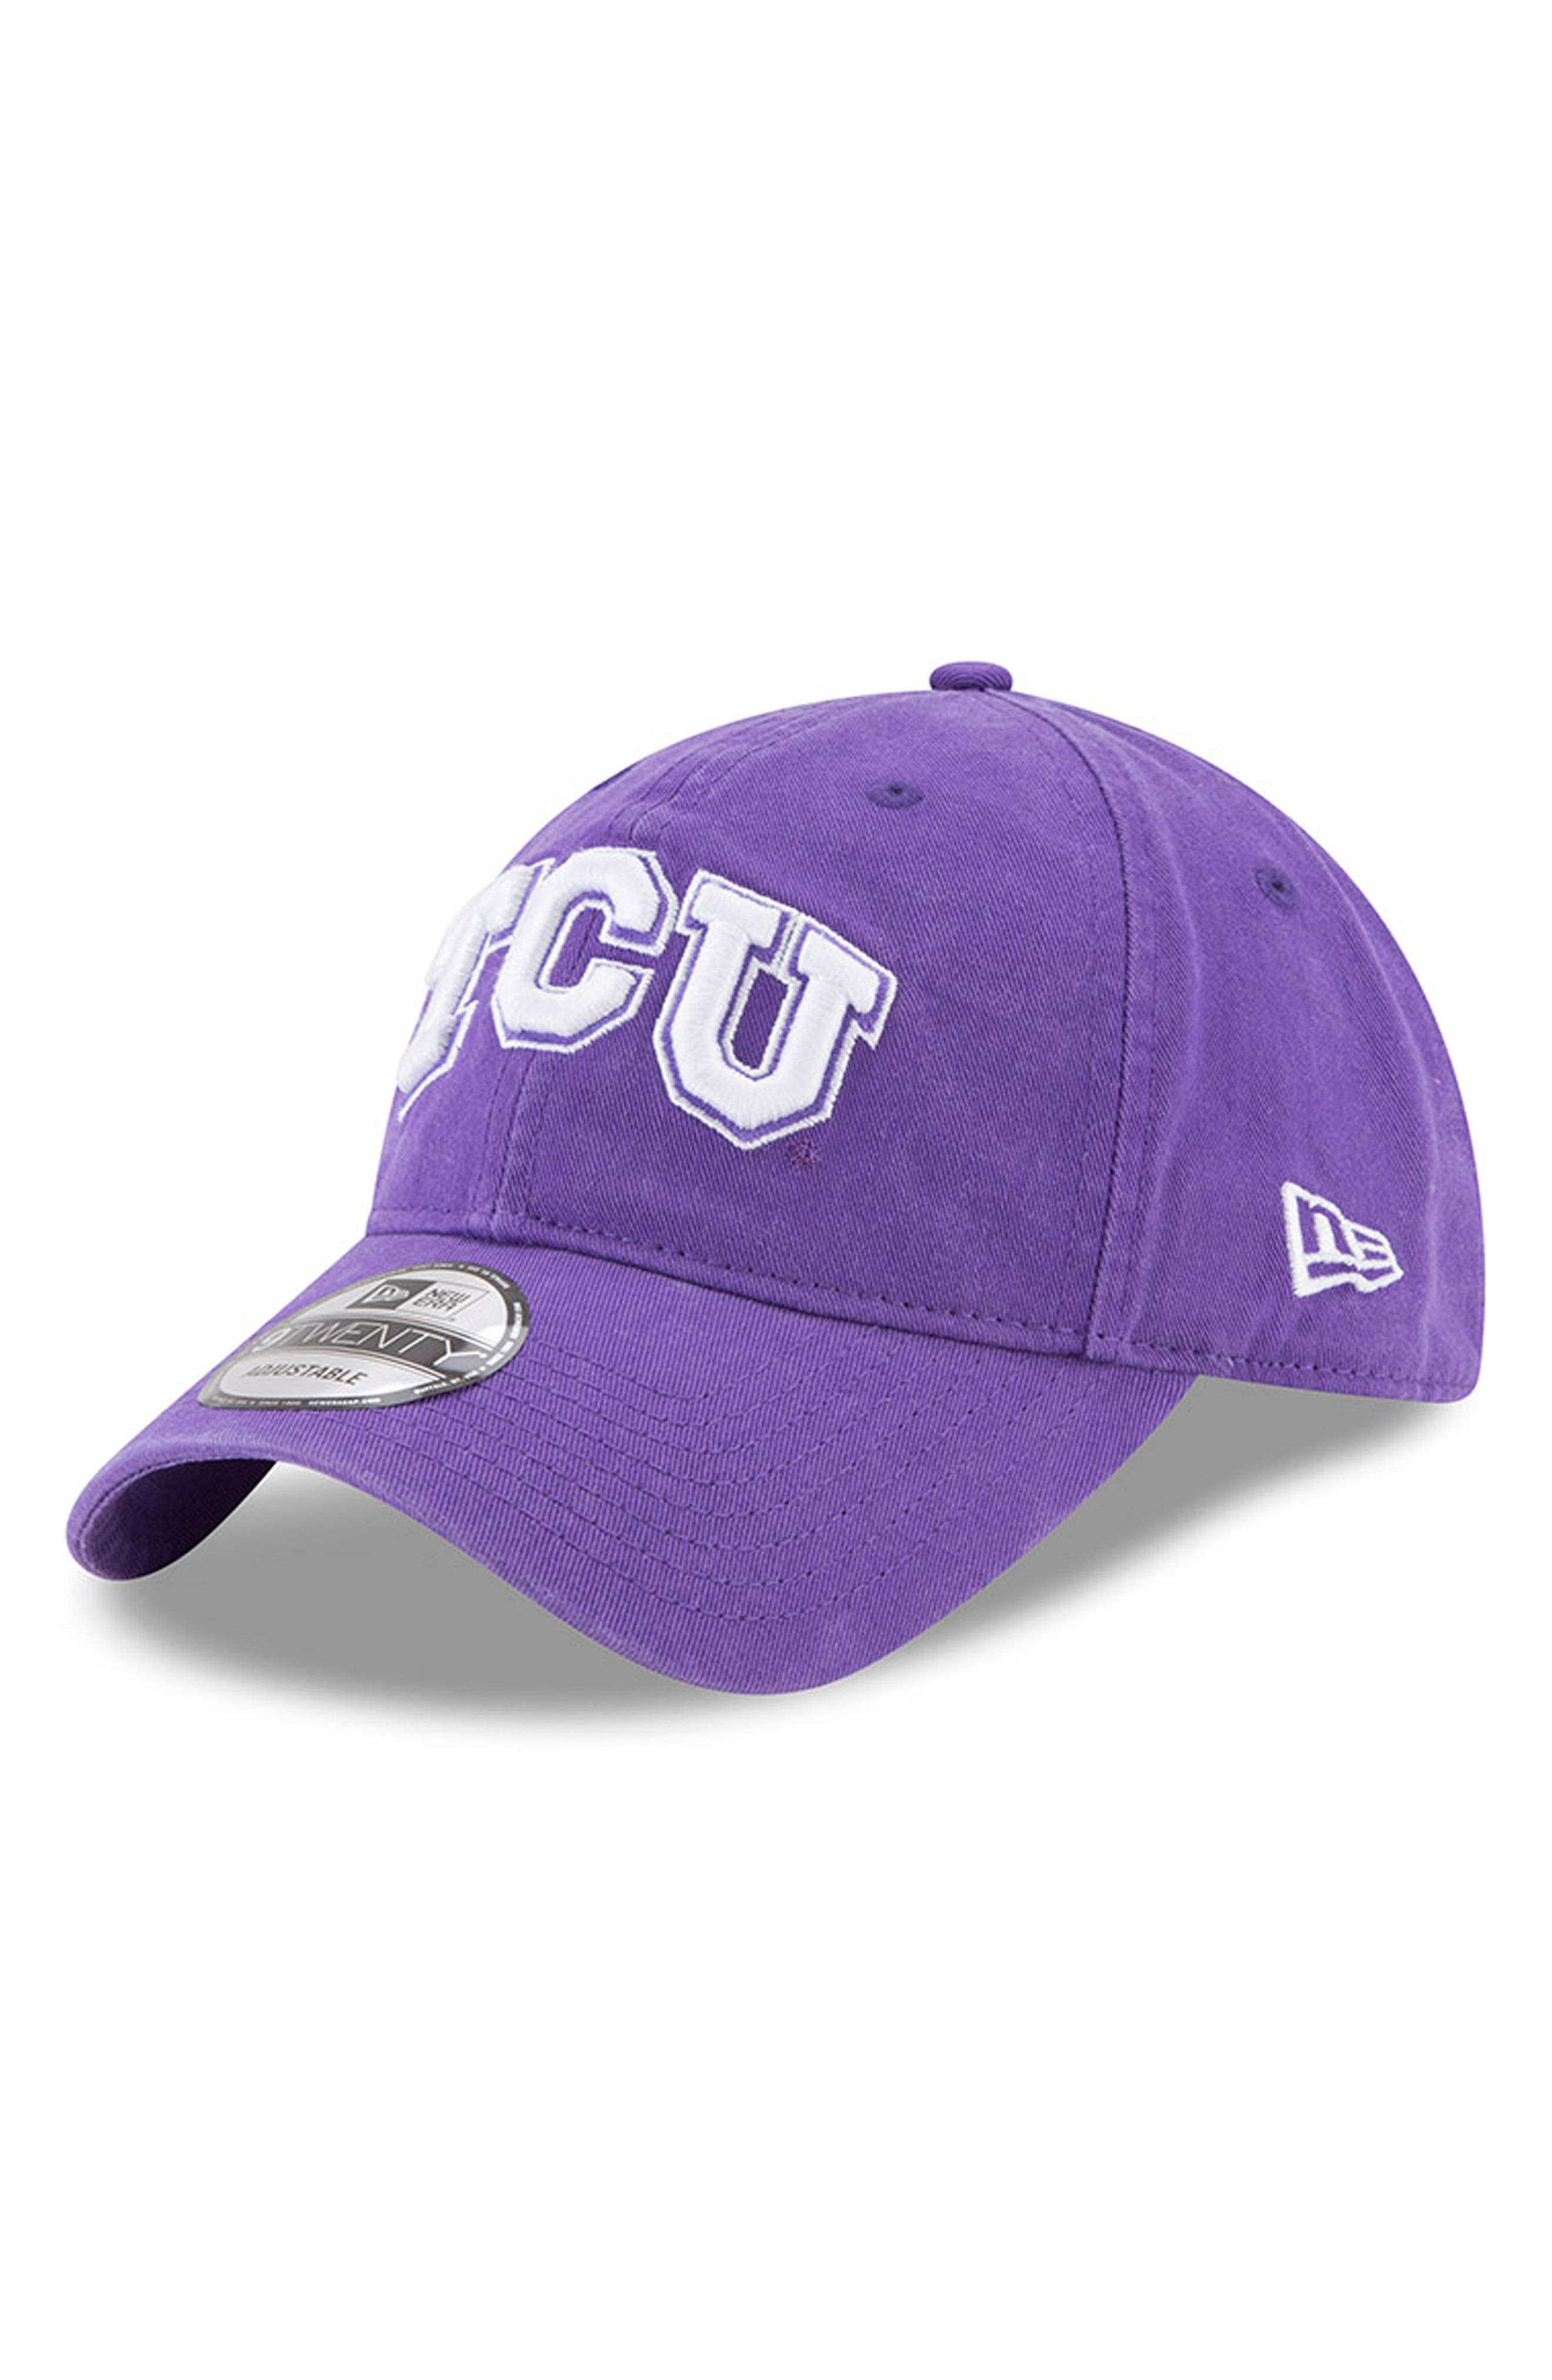 New Era Cap Collegiate Core Classic Baseball Cap